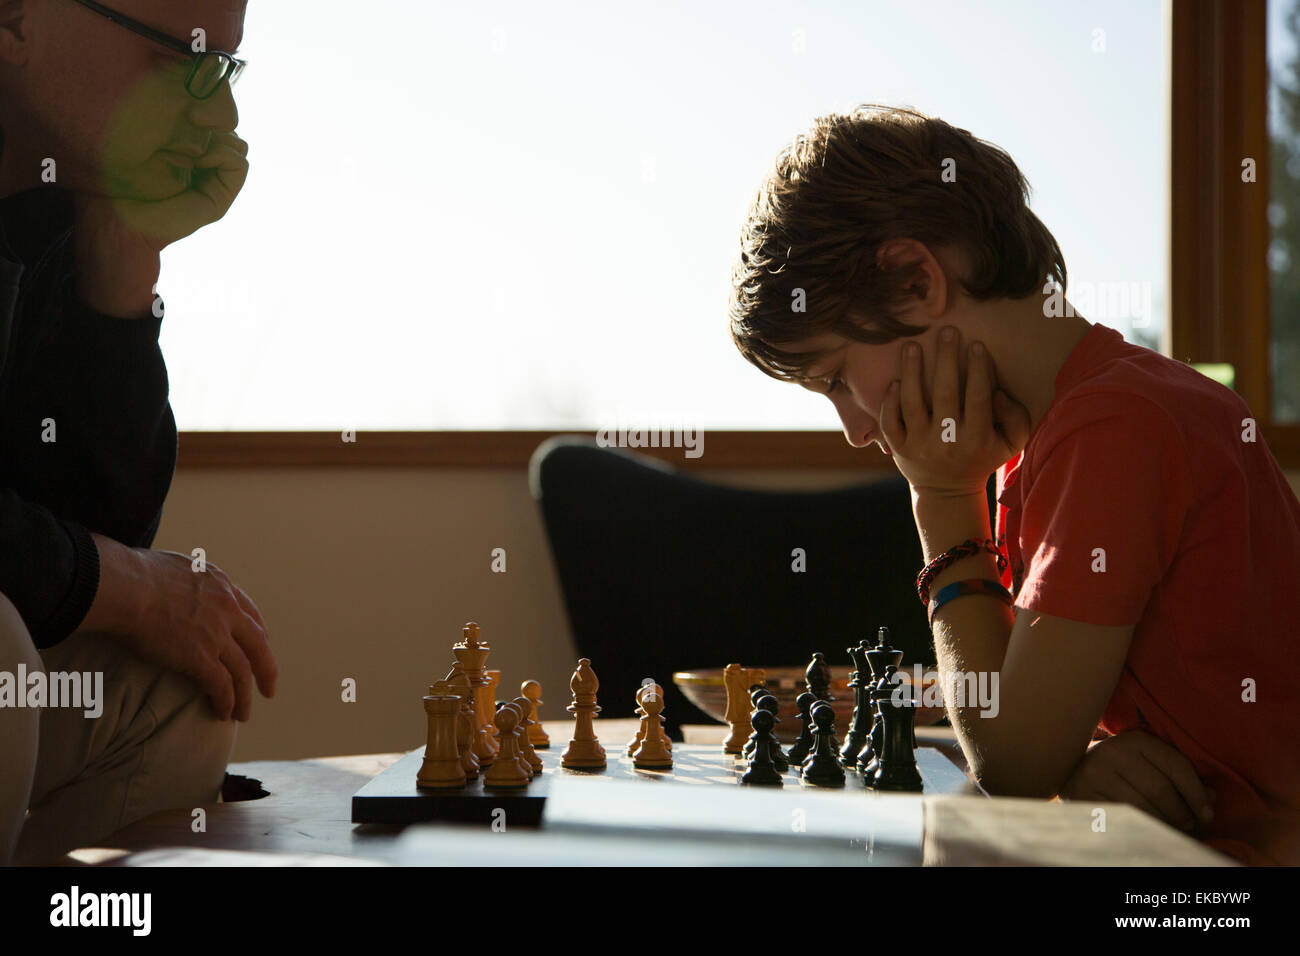 Father and son playing game of chess - Stock Image